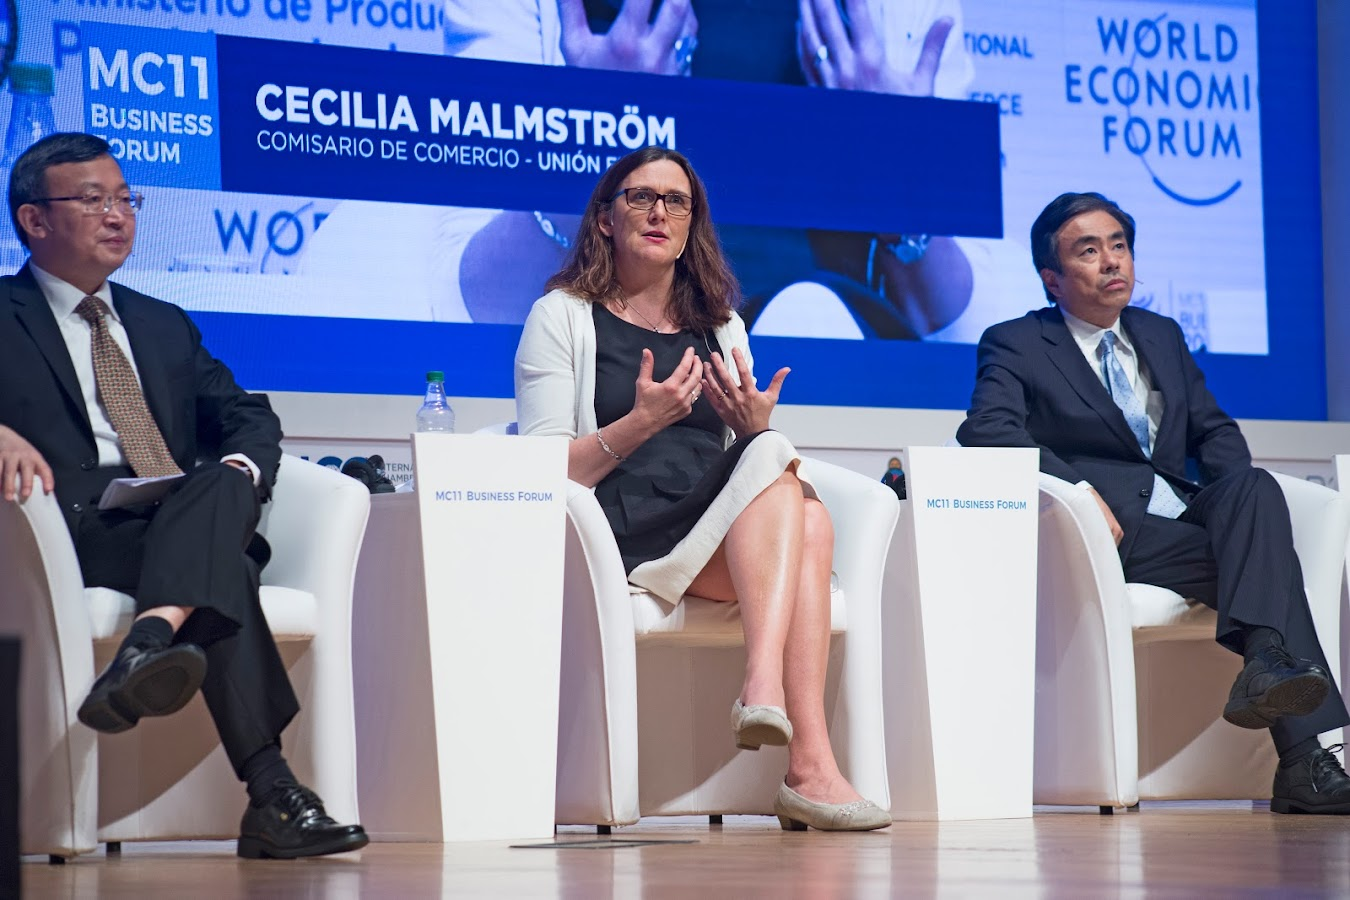 Cecilia Malmstroem - © European Union, 2017 / Photo: Erika Villano